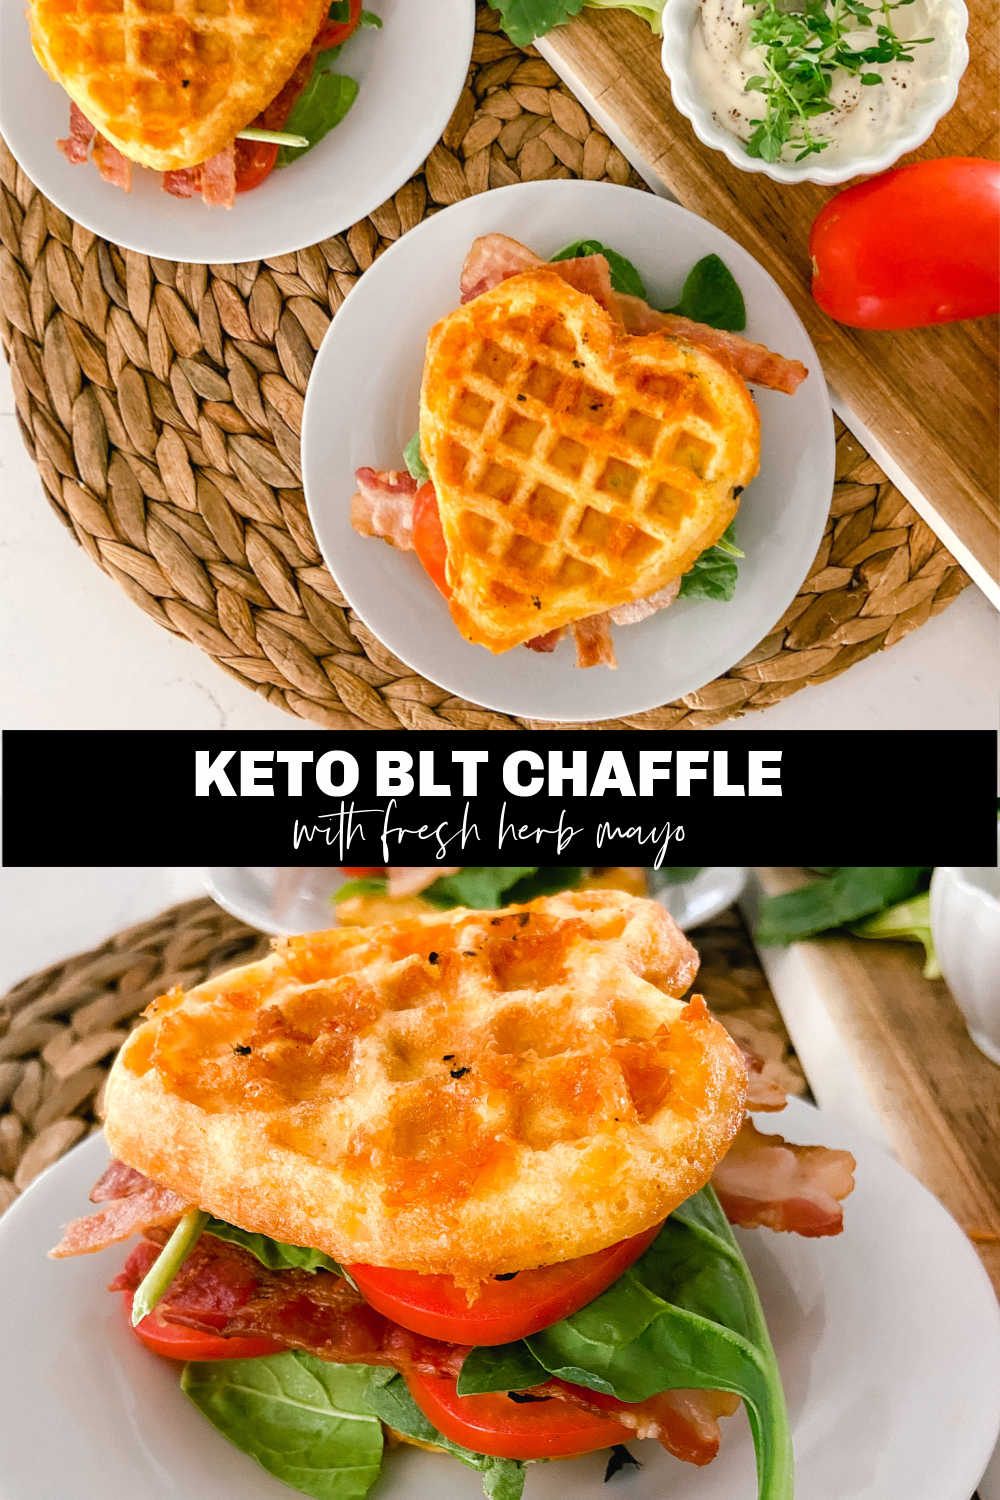 Chaffle BLT Sandwiches with Herb Mayo. Nothing's better in the summer than a fresh BLT. Stay on track with this low-carb, keto-friendly BLT!